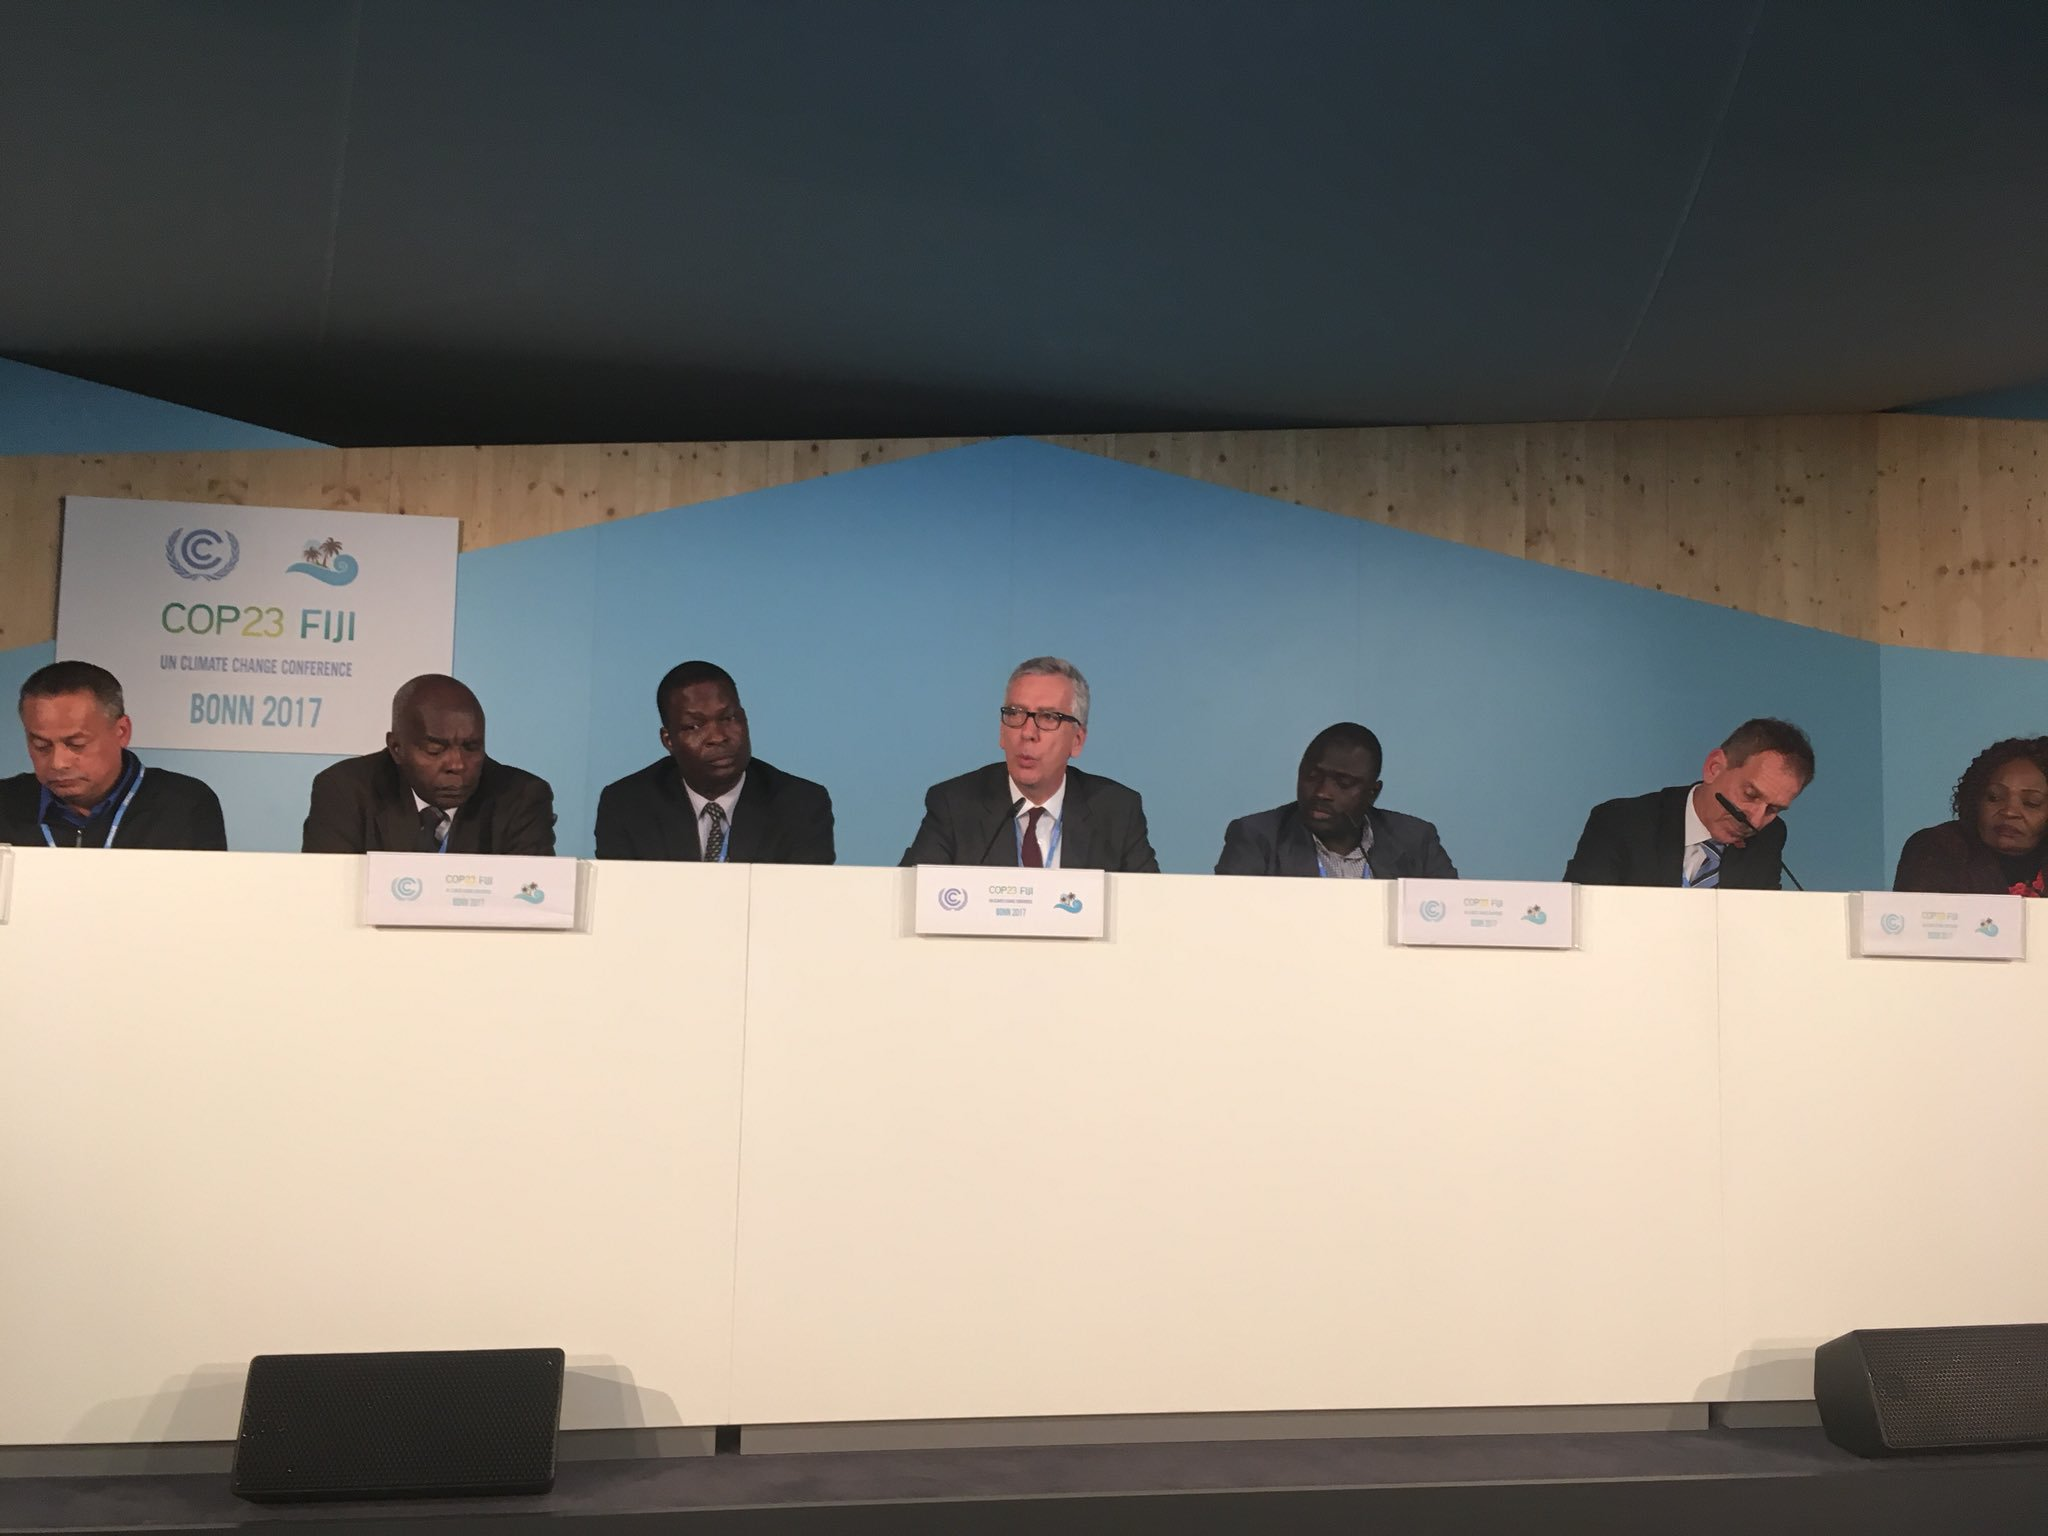 President of Sardinia explaining how the network of regions in Europe lobby for recognition that 70% climate action is at the local level. Money not main problem in EU - 20% of EU budget climate finance. Challenge 2 reach vulnerable communities & get #MoneyWhereItMatters @COP23 https://t.co/HXTt2vKaY1